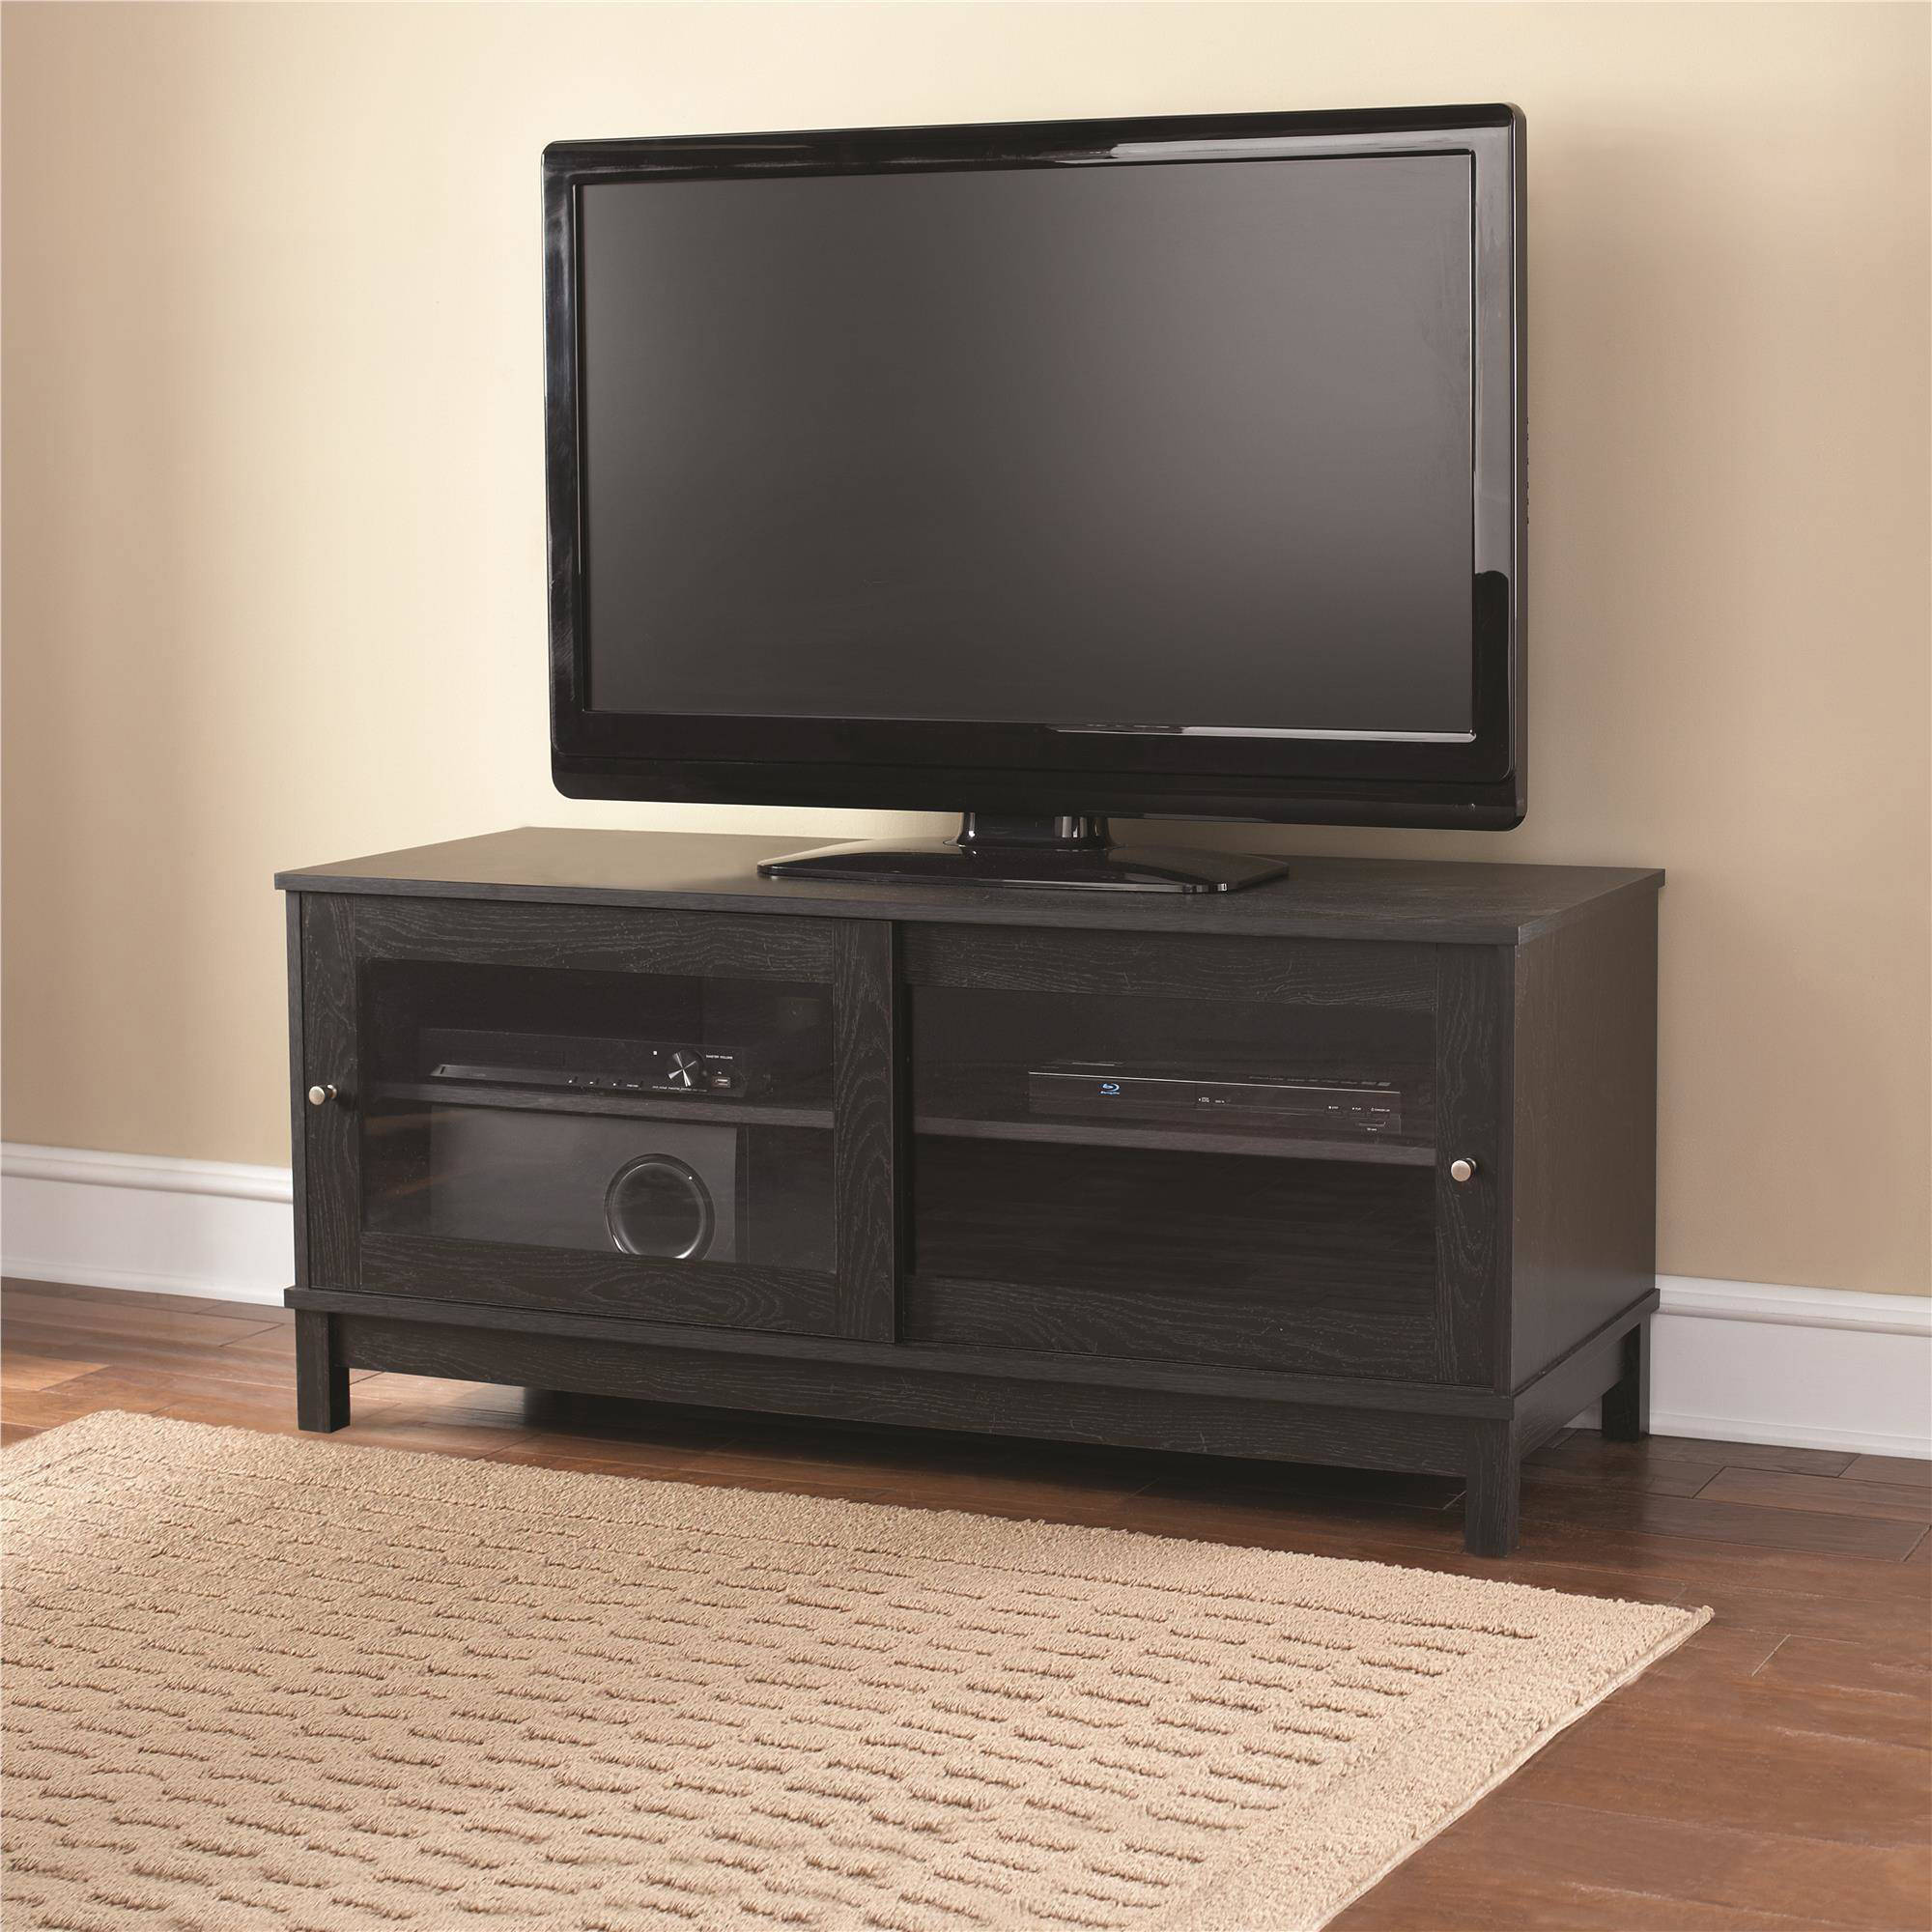 "Mainstays TV Stand for TVs up to 55"", Multiple Finishes"